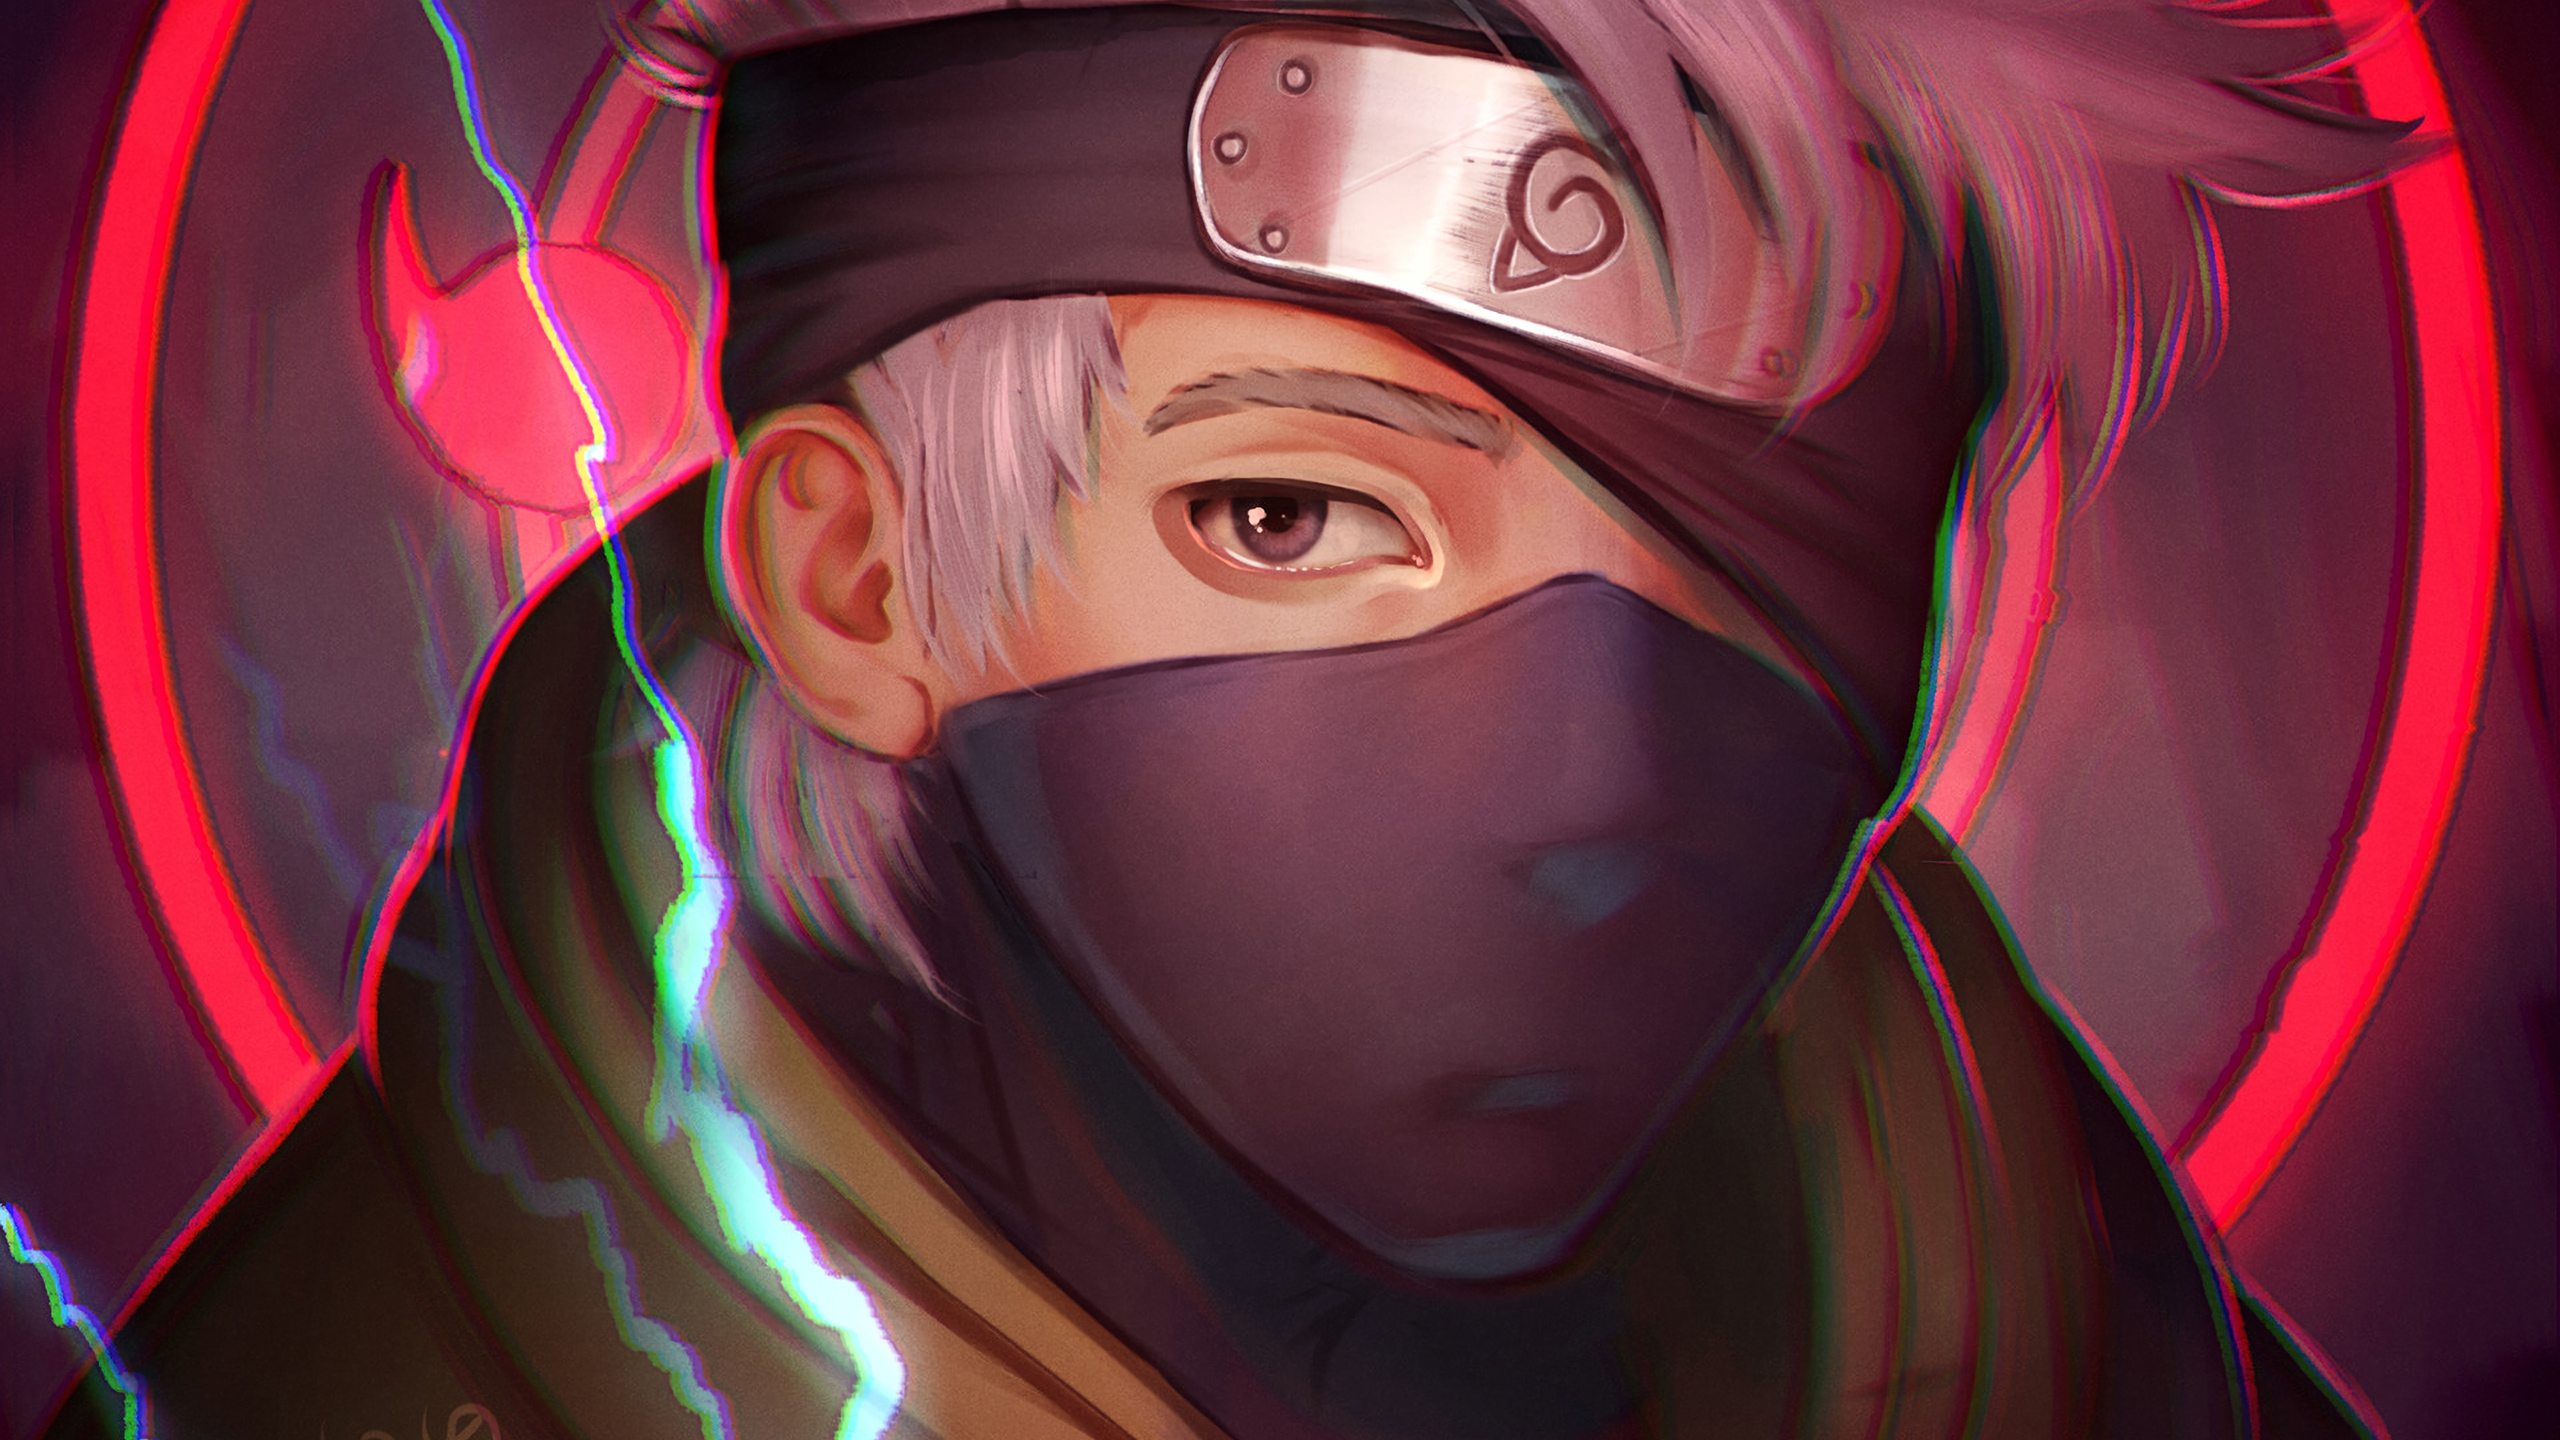 Kakashi Hatake Naruto Hd Anime 4k Wallpapers Images